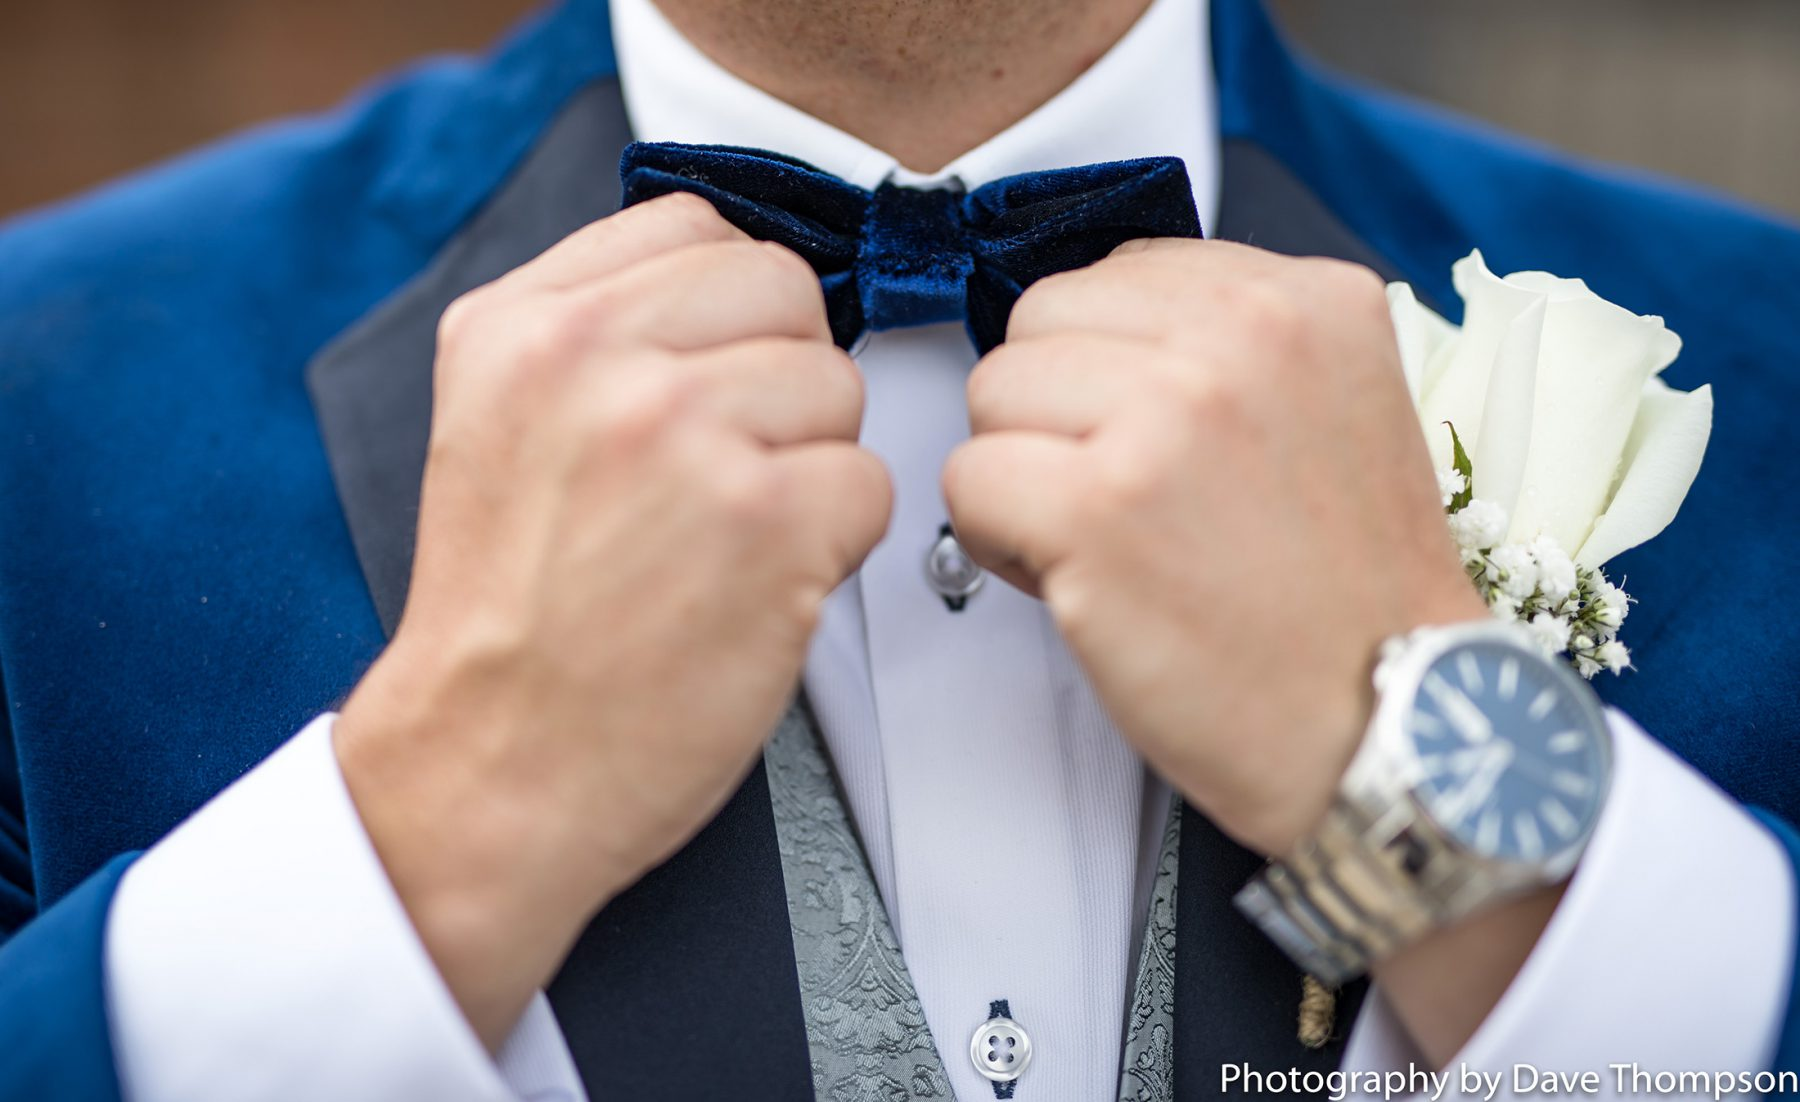 The groom adjusts his bow tie